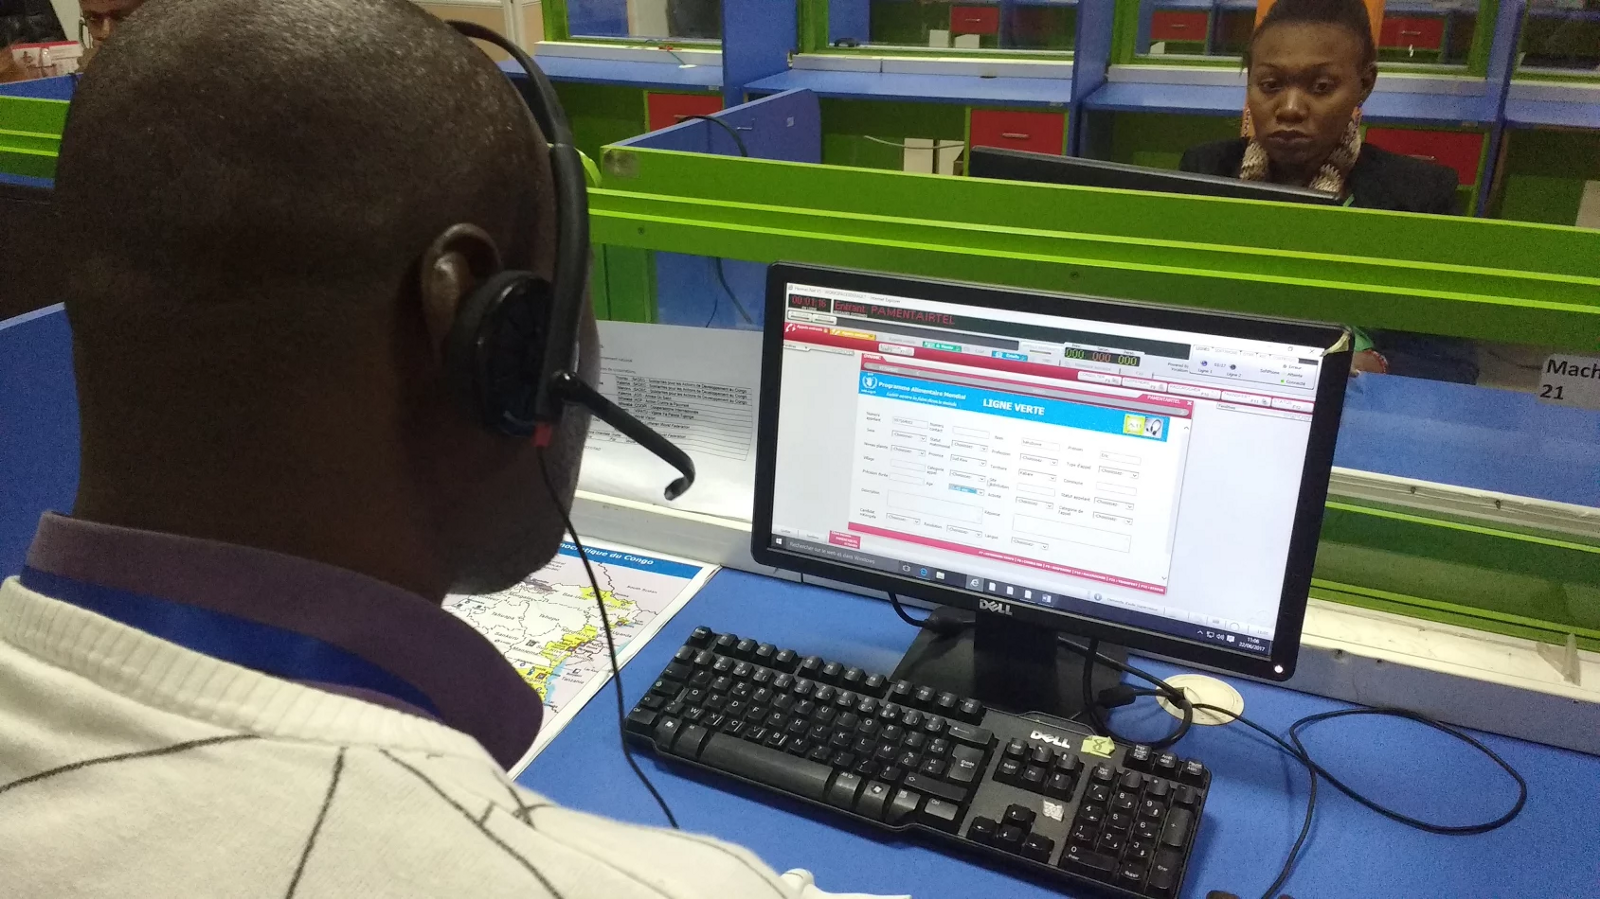 Congo Call Center operator on the phone with a WFP beneficiary to discuss WFP's activities